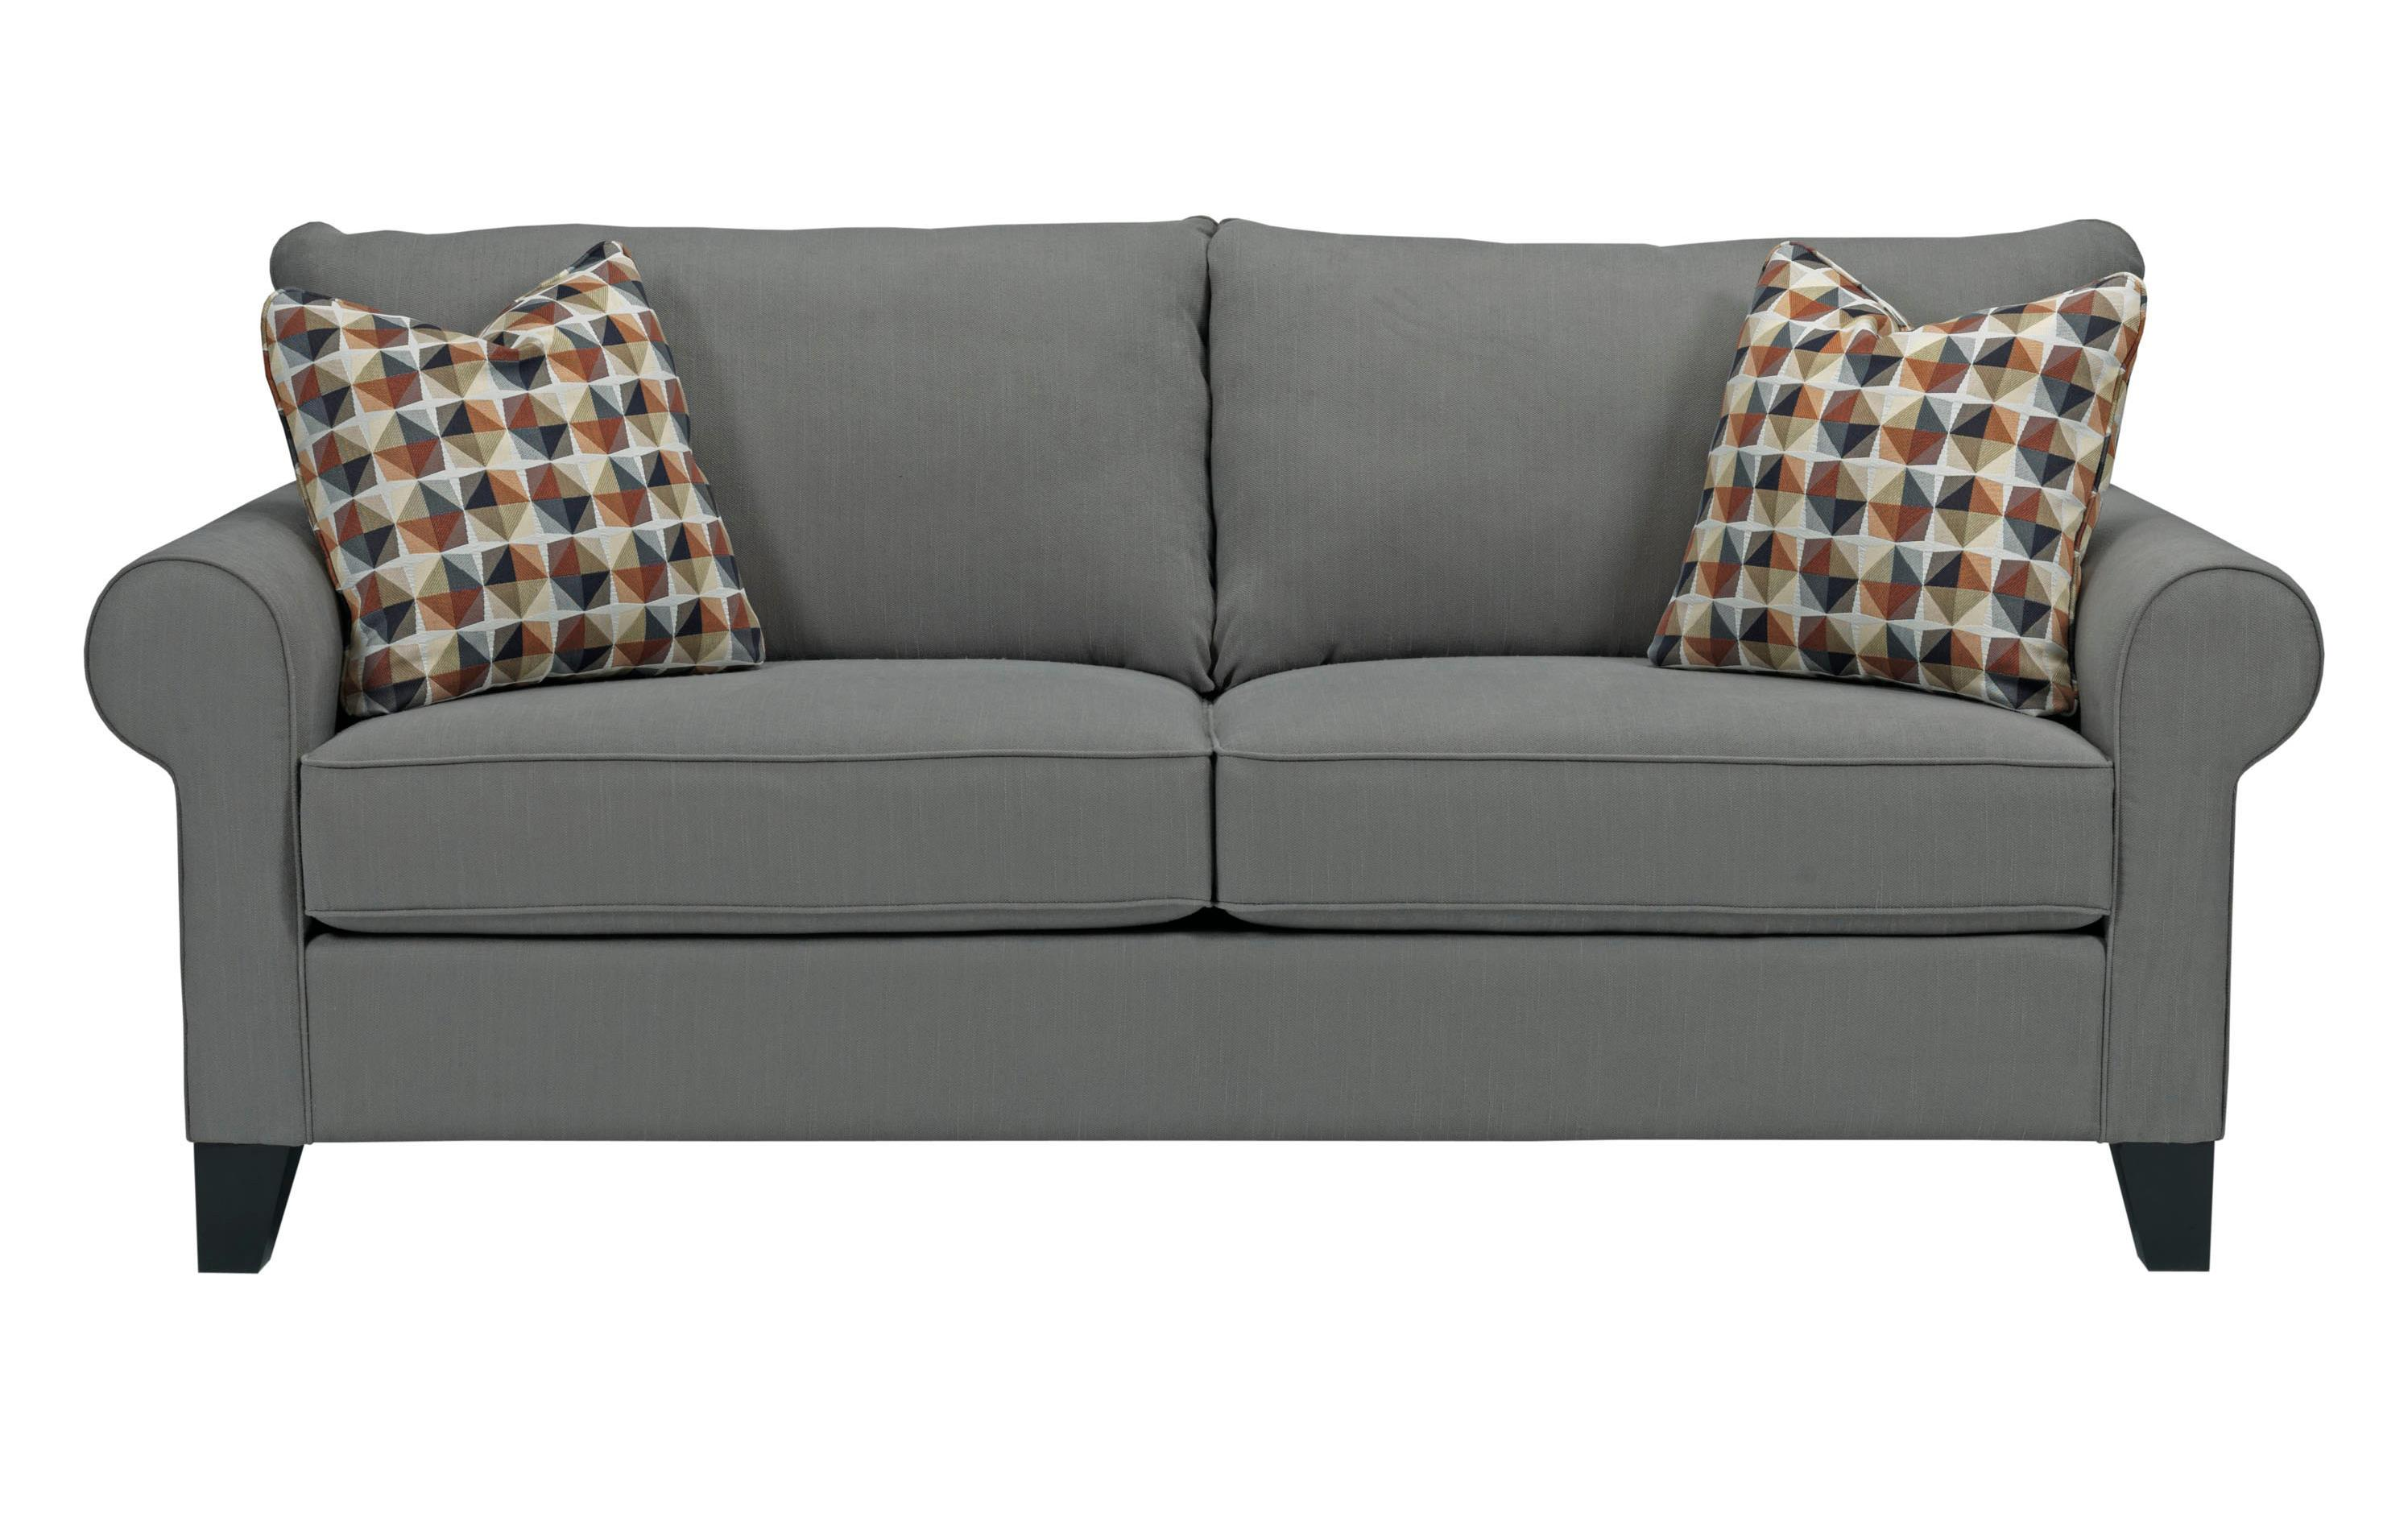 Broyhill Furniture Noda Transitional Sofa - Item Number: 4230-3-4073-94